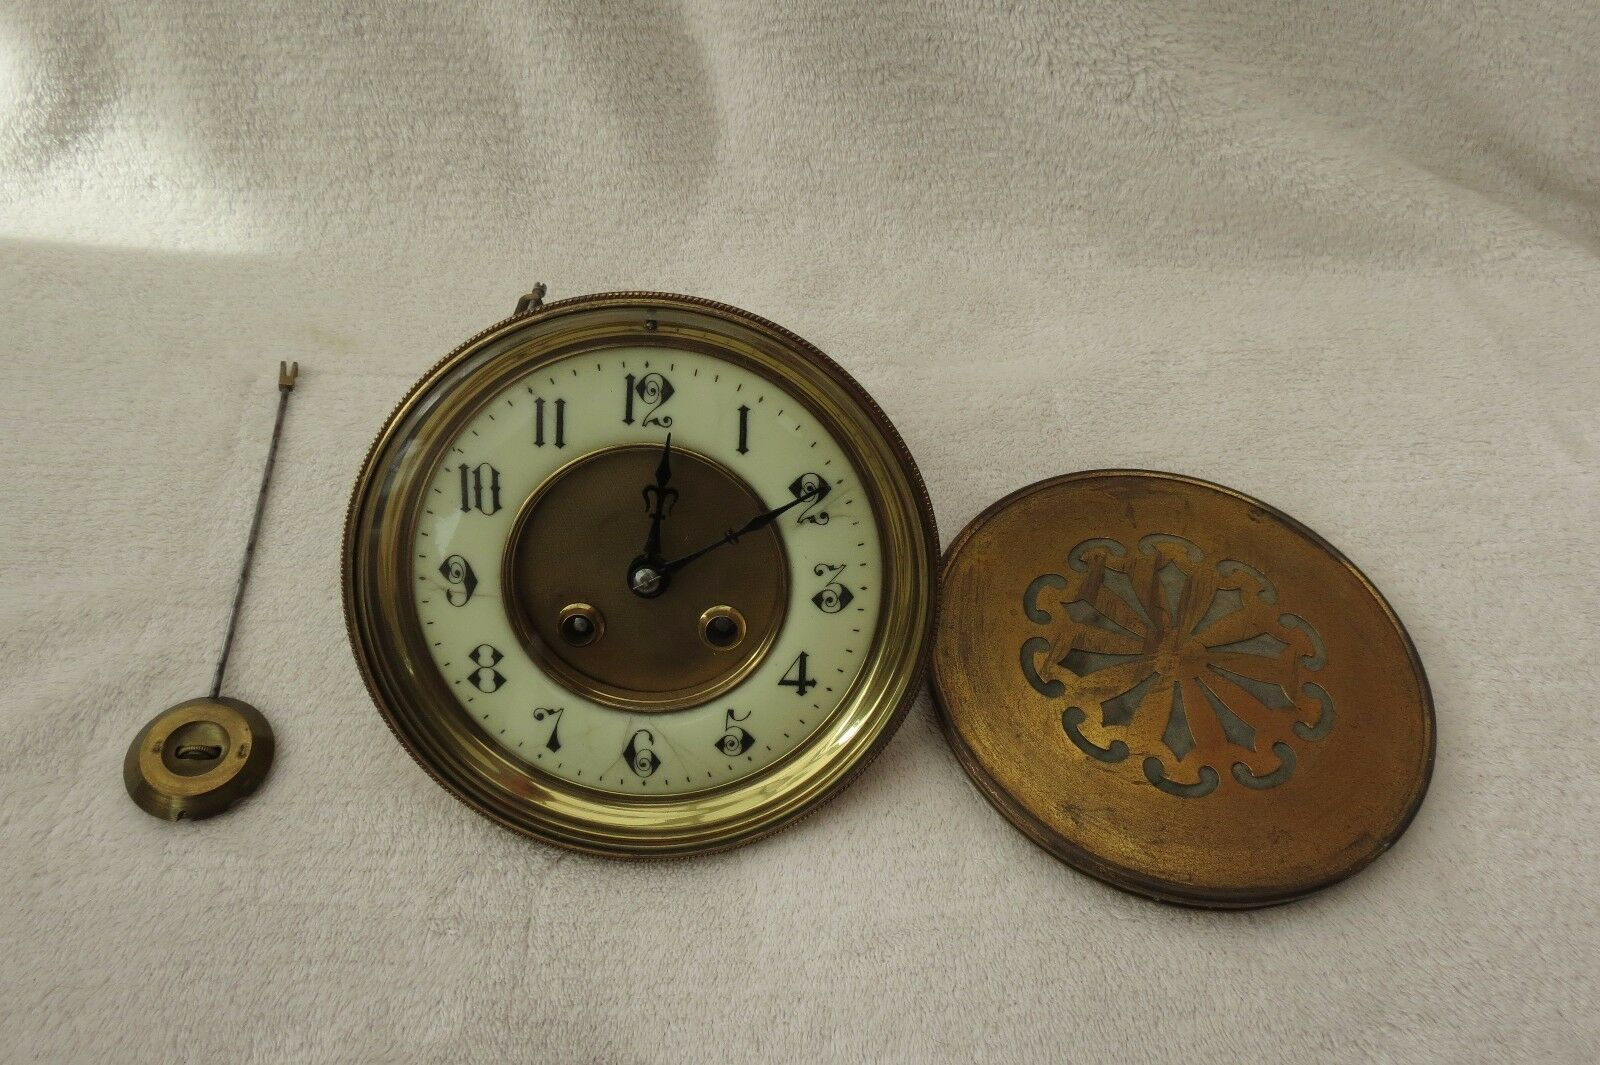 Large Antique French Striking Clock Movement Dial And Hands